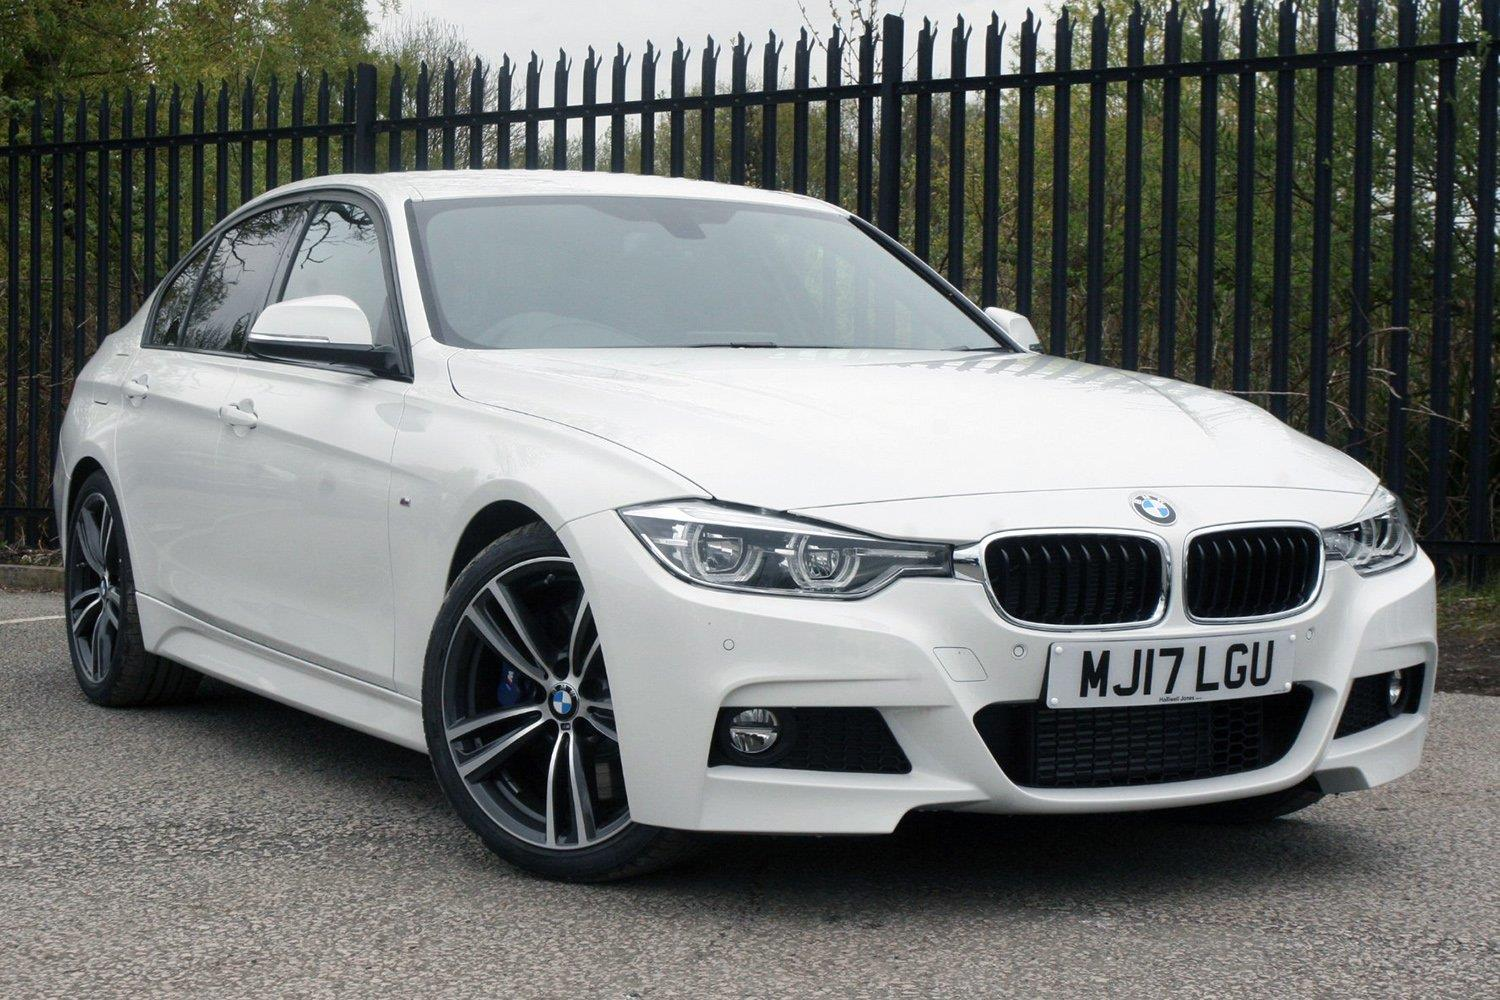 BMW 3 Series Saloon MJ17LGU - Image 8